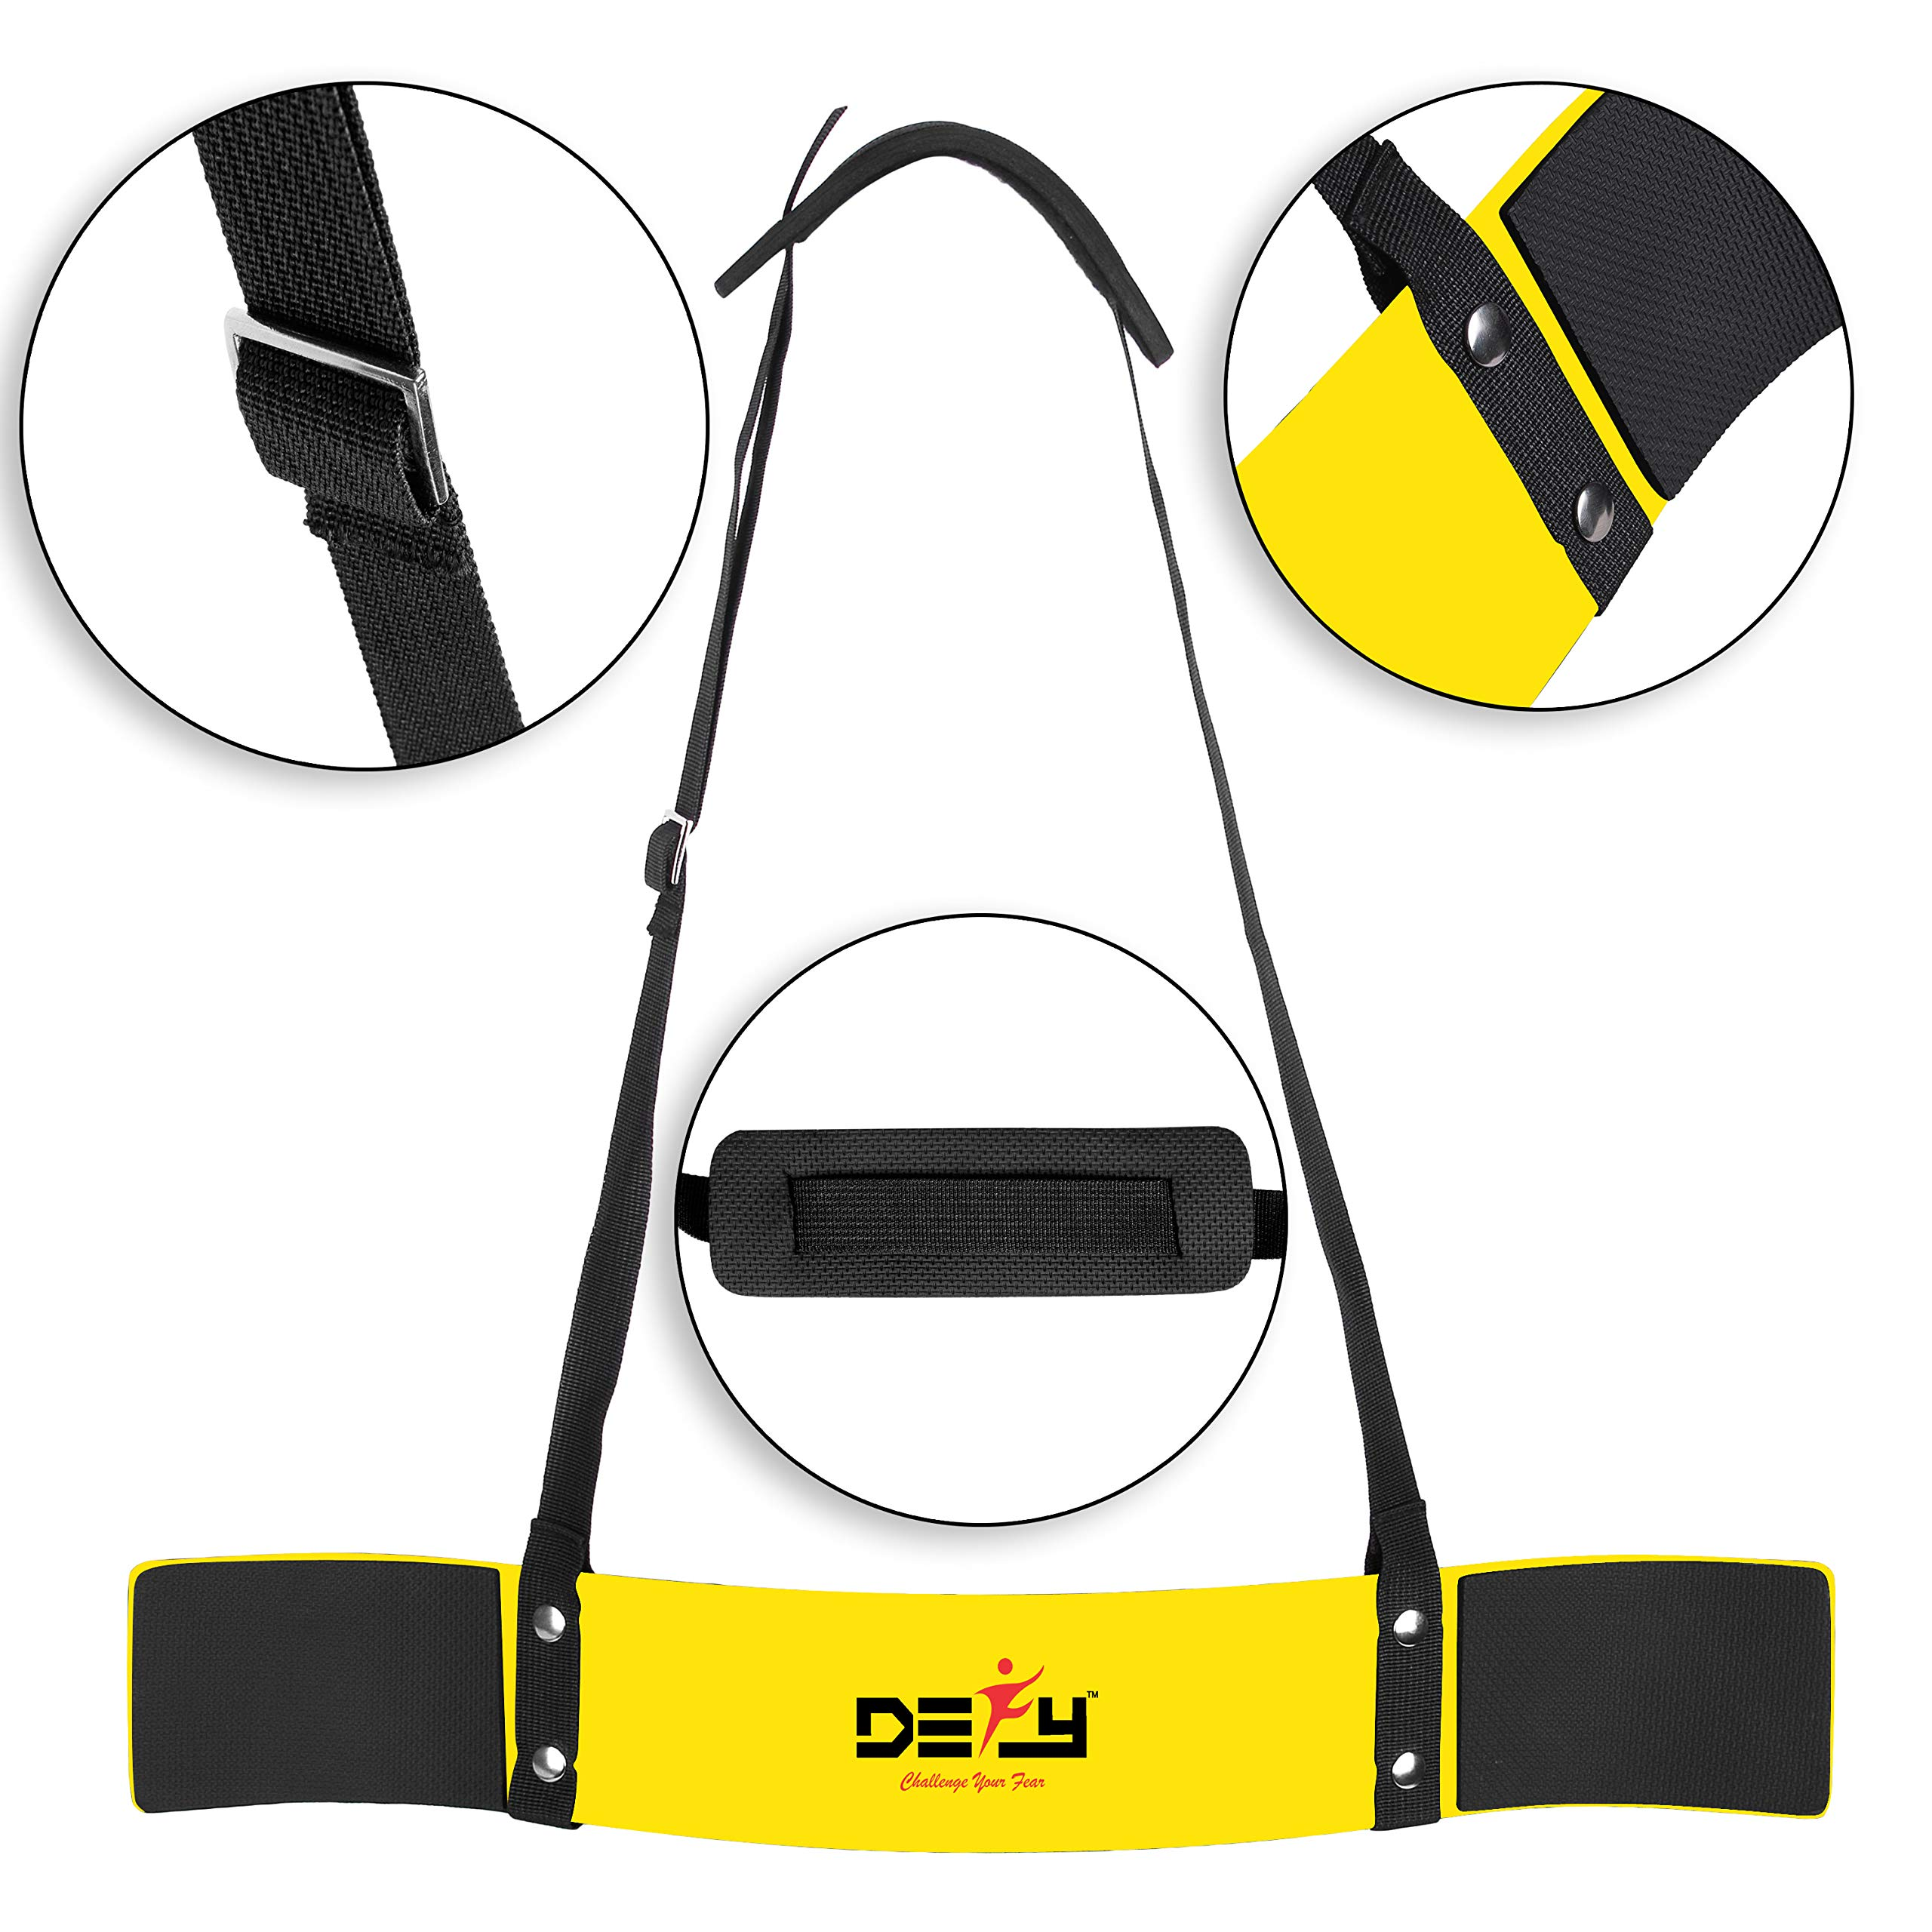 DEFY Heavy Duty Arm Blaster for Biceps and Triceps Workout Ideal Bicep Isolator & Muscle Builder for Bodybuilders and Weight Lifters with Advanced Neoprene Padding for Secure Workout (Yellow)